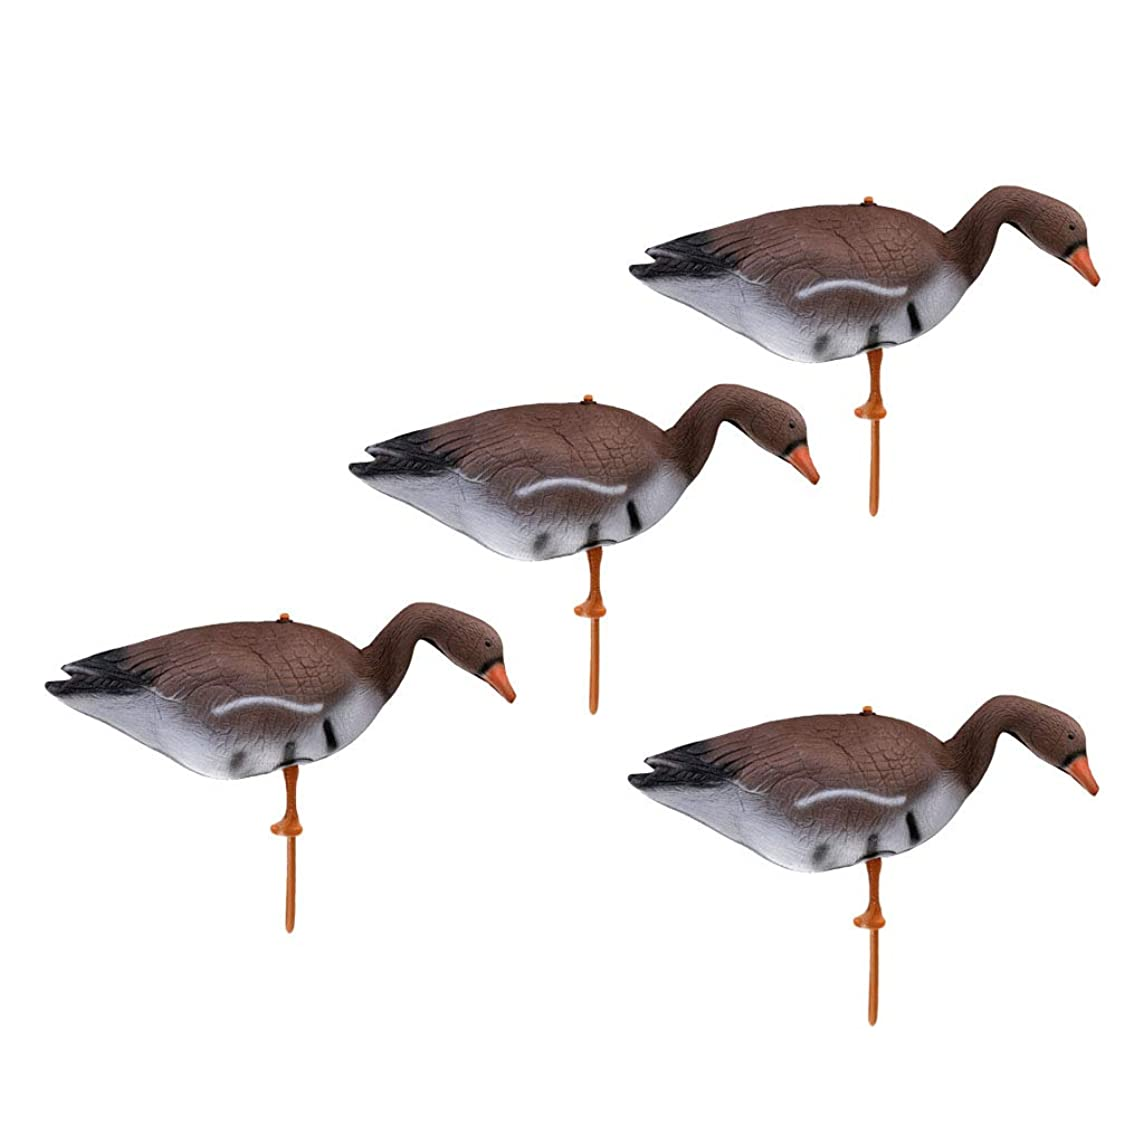 kesoto Swan Decoy Pond Bird Deterrent Decoration Hunting Floating Decoys Ornamental, Pack of 4